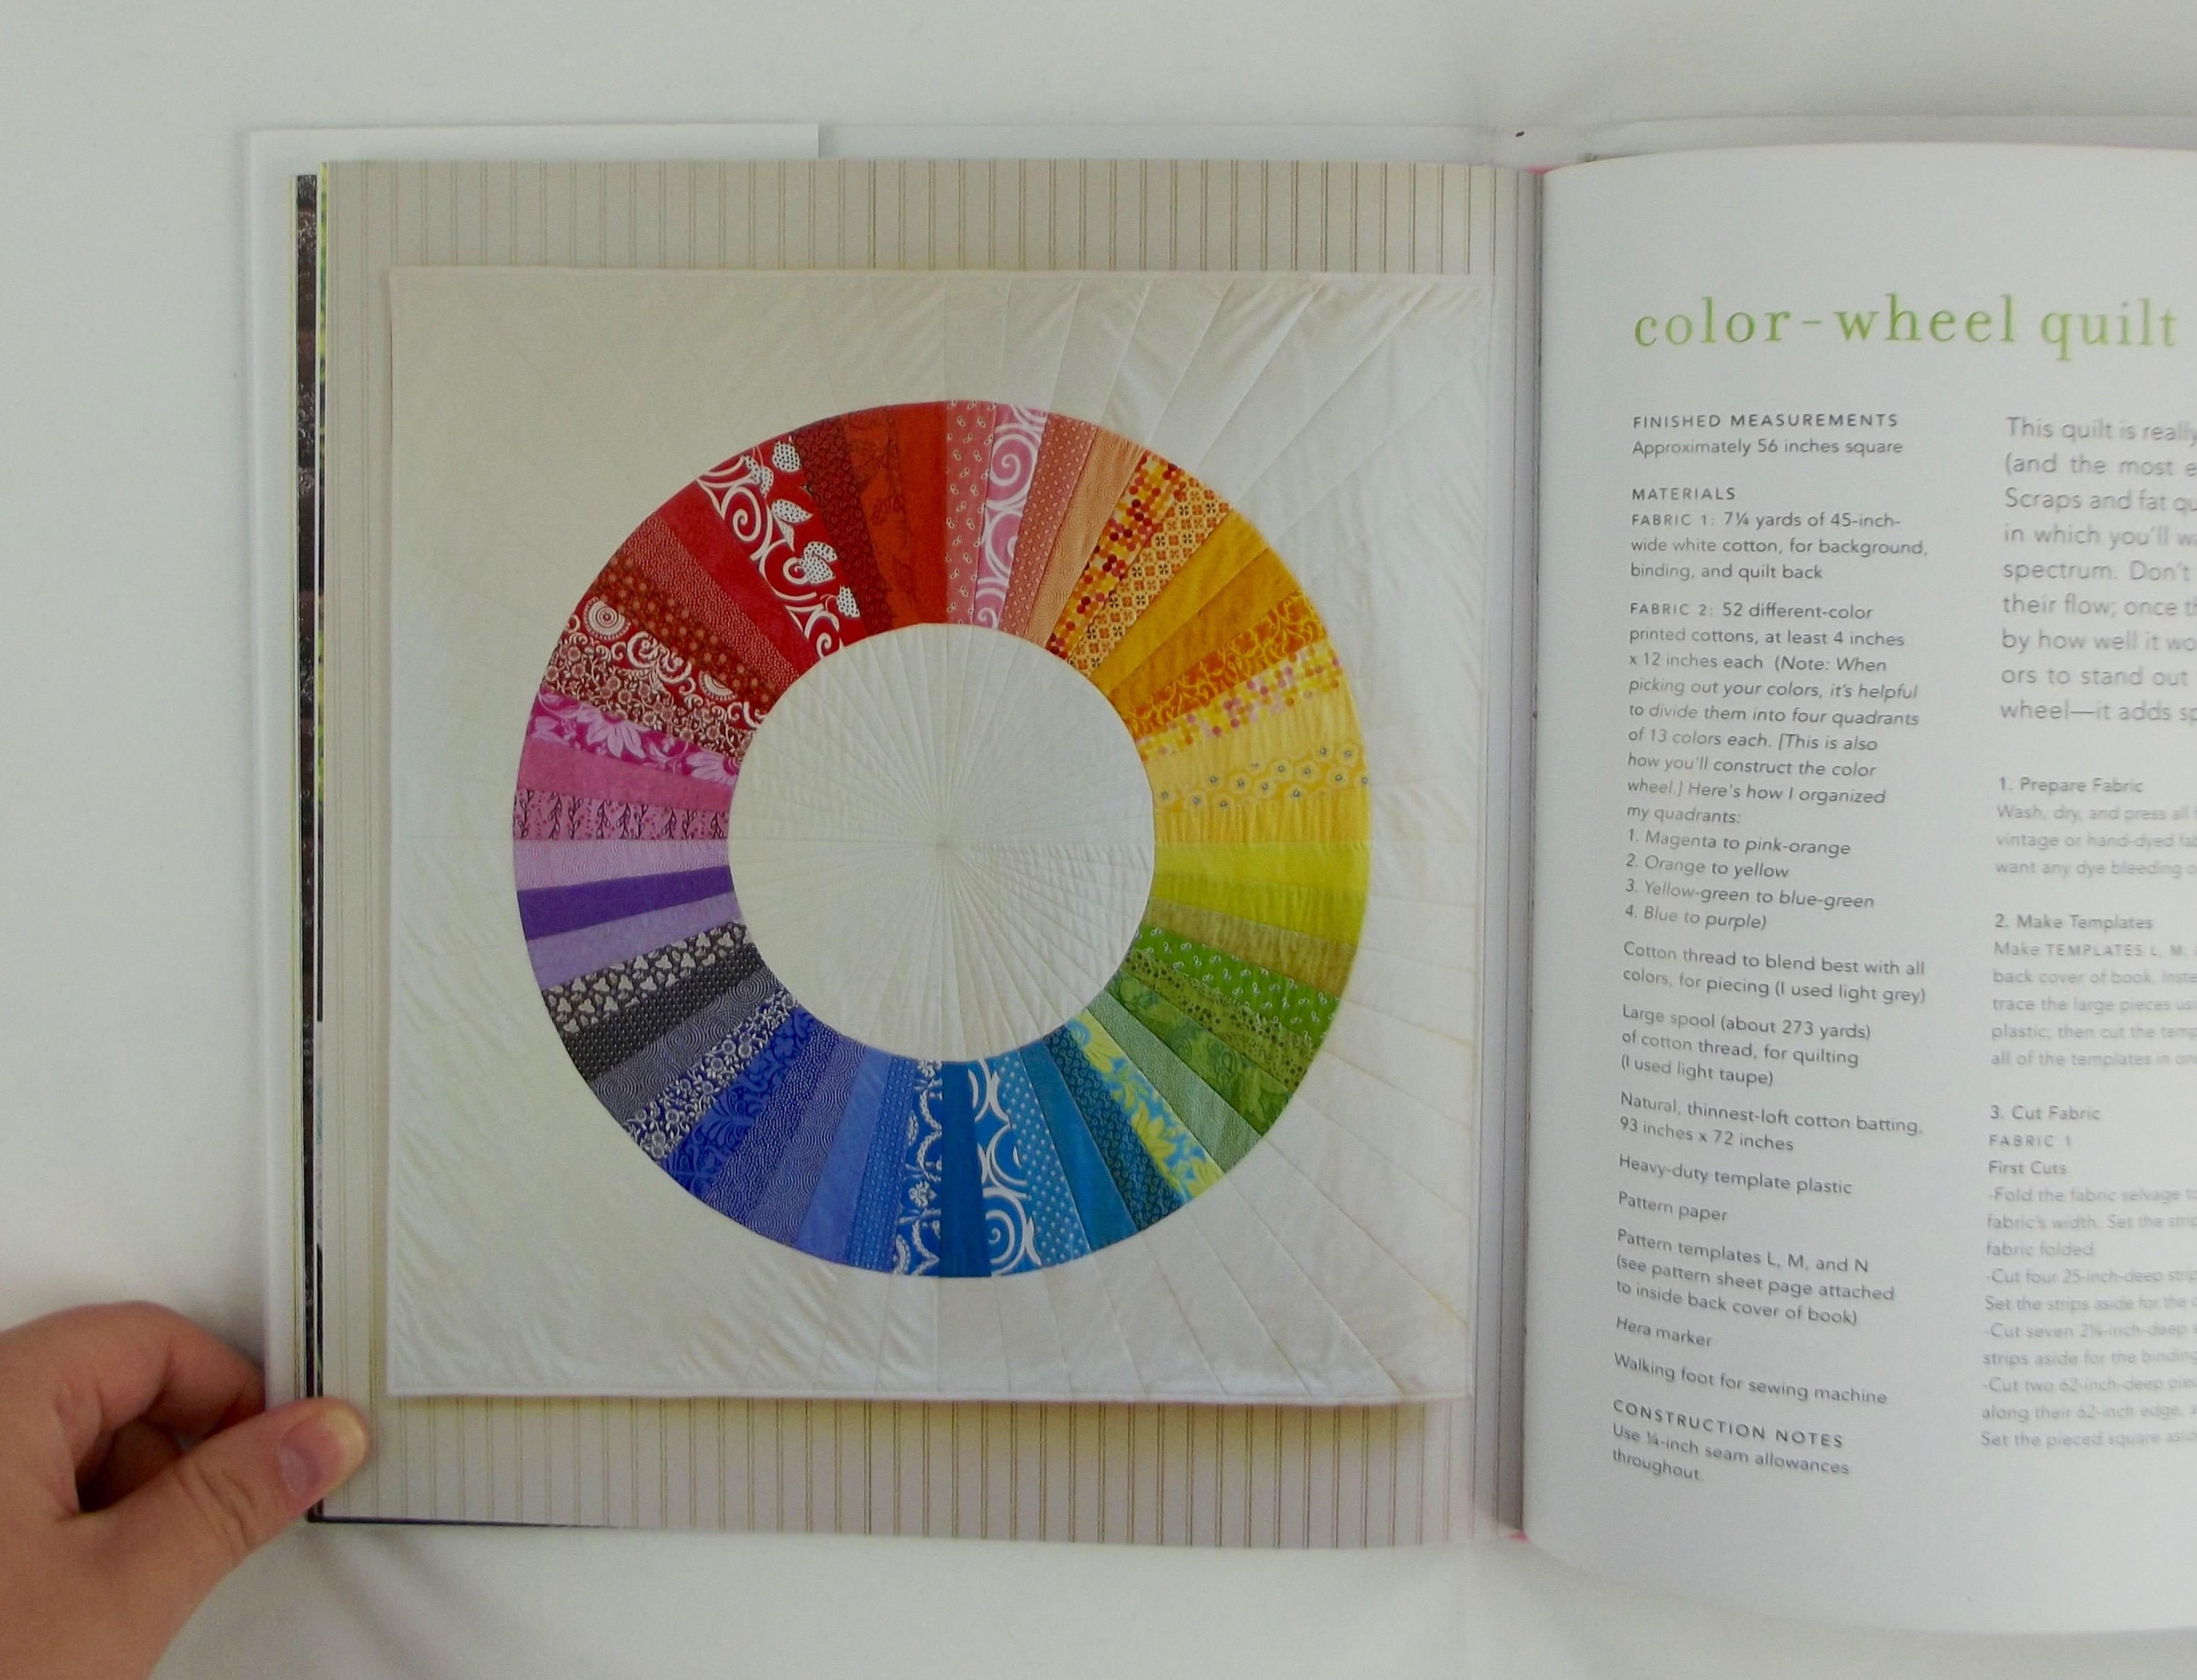 nsb jh color wheel quilt in book - Color Theory Book